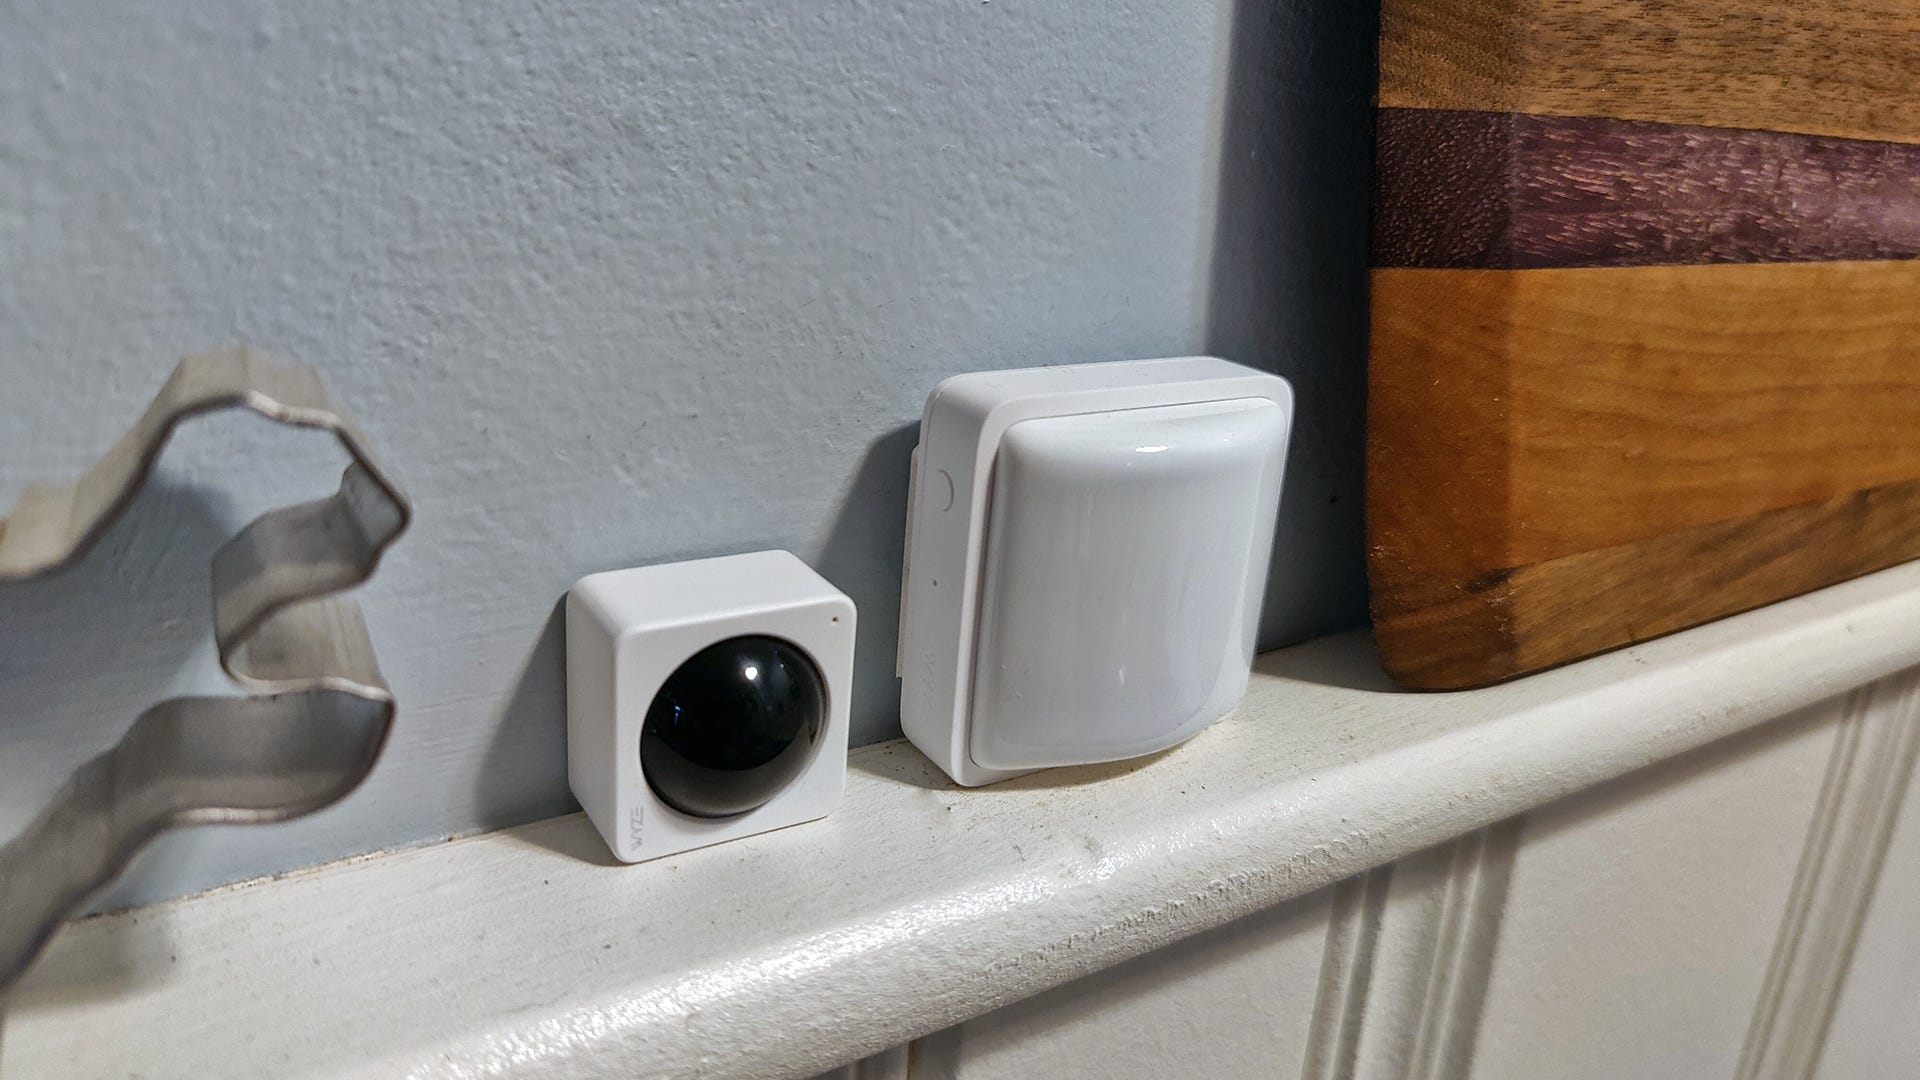 Wyze's Home Monitoring camera a motion system on a shelf.